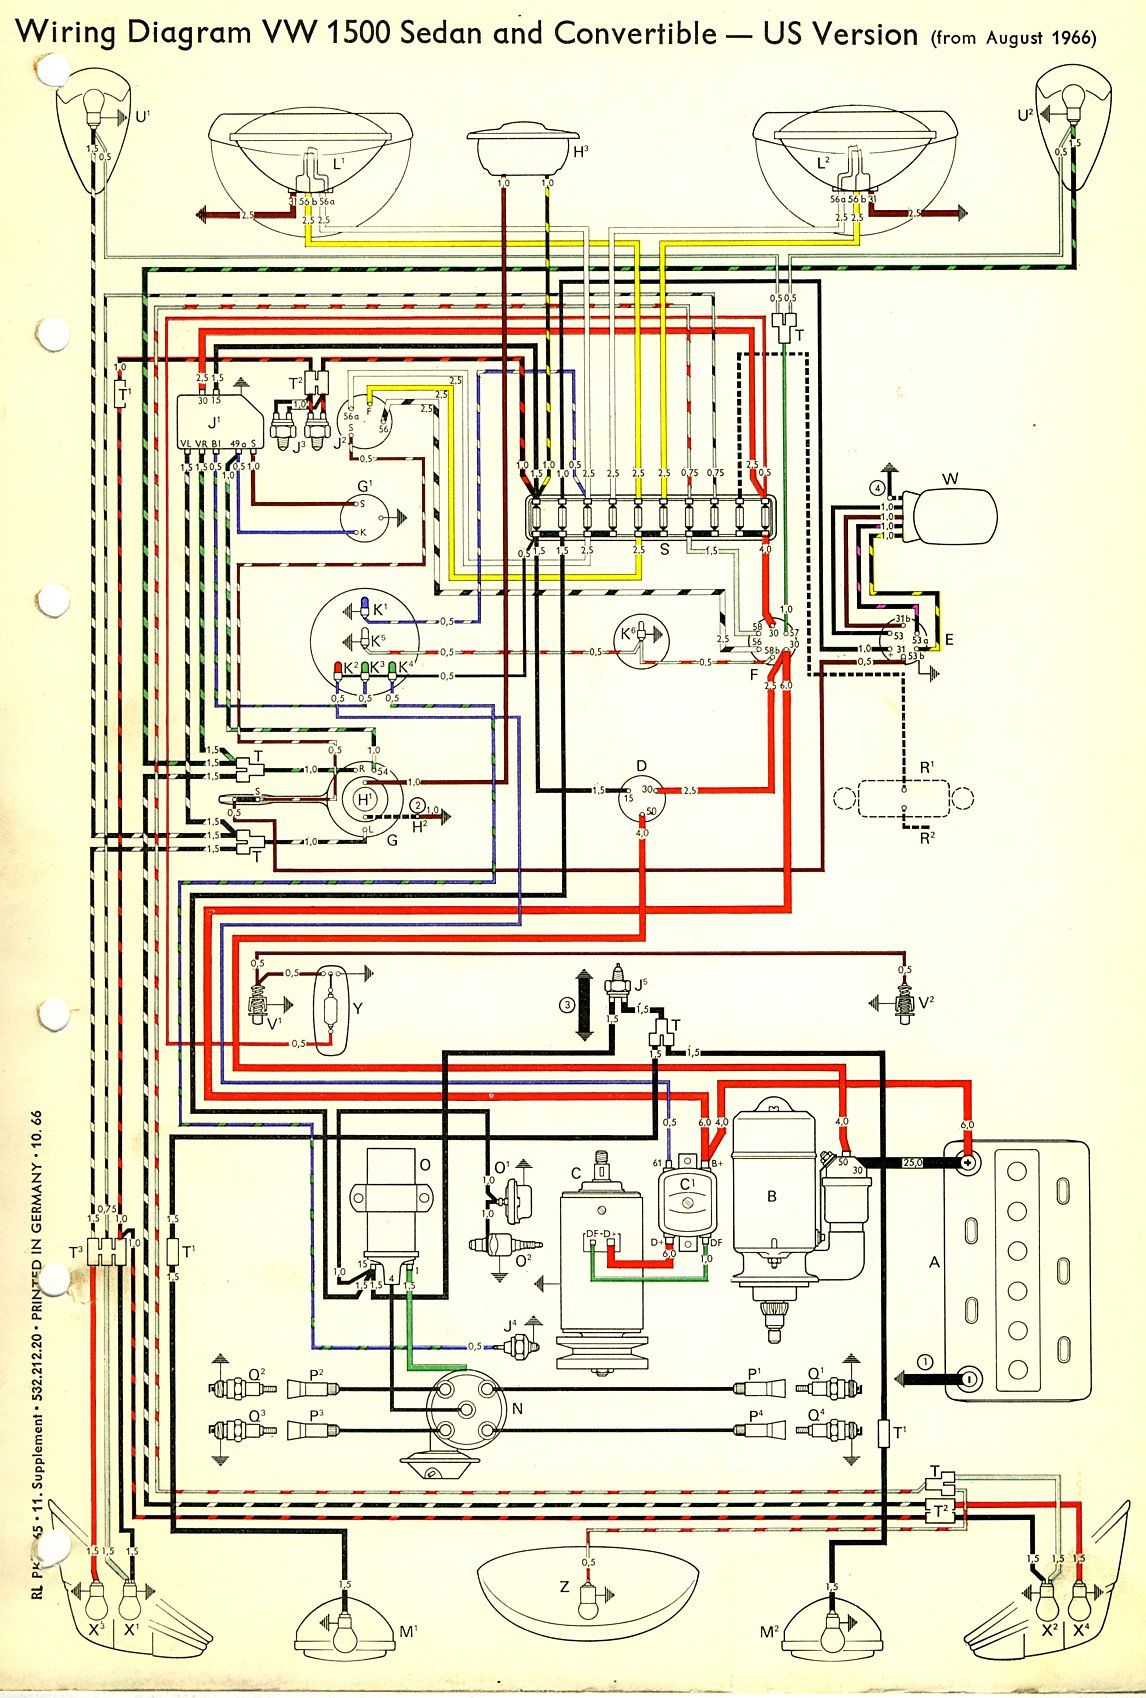 74 beetle wiring diagram wiring diagram1968 vw bug wiring diagram wiring diagram